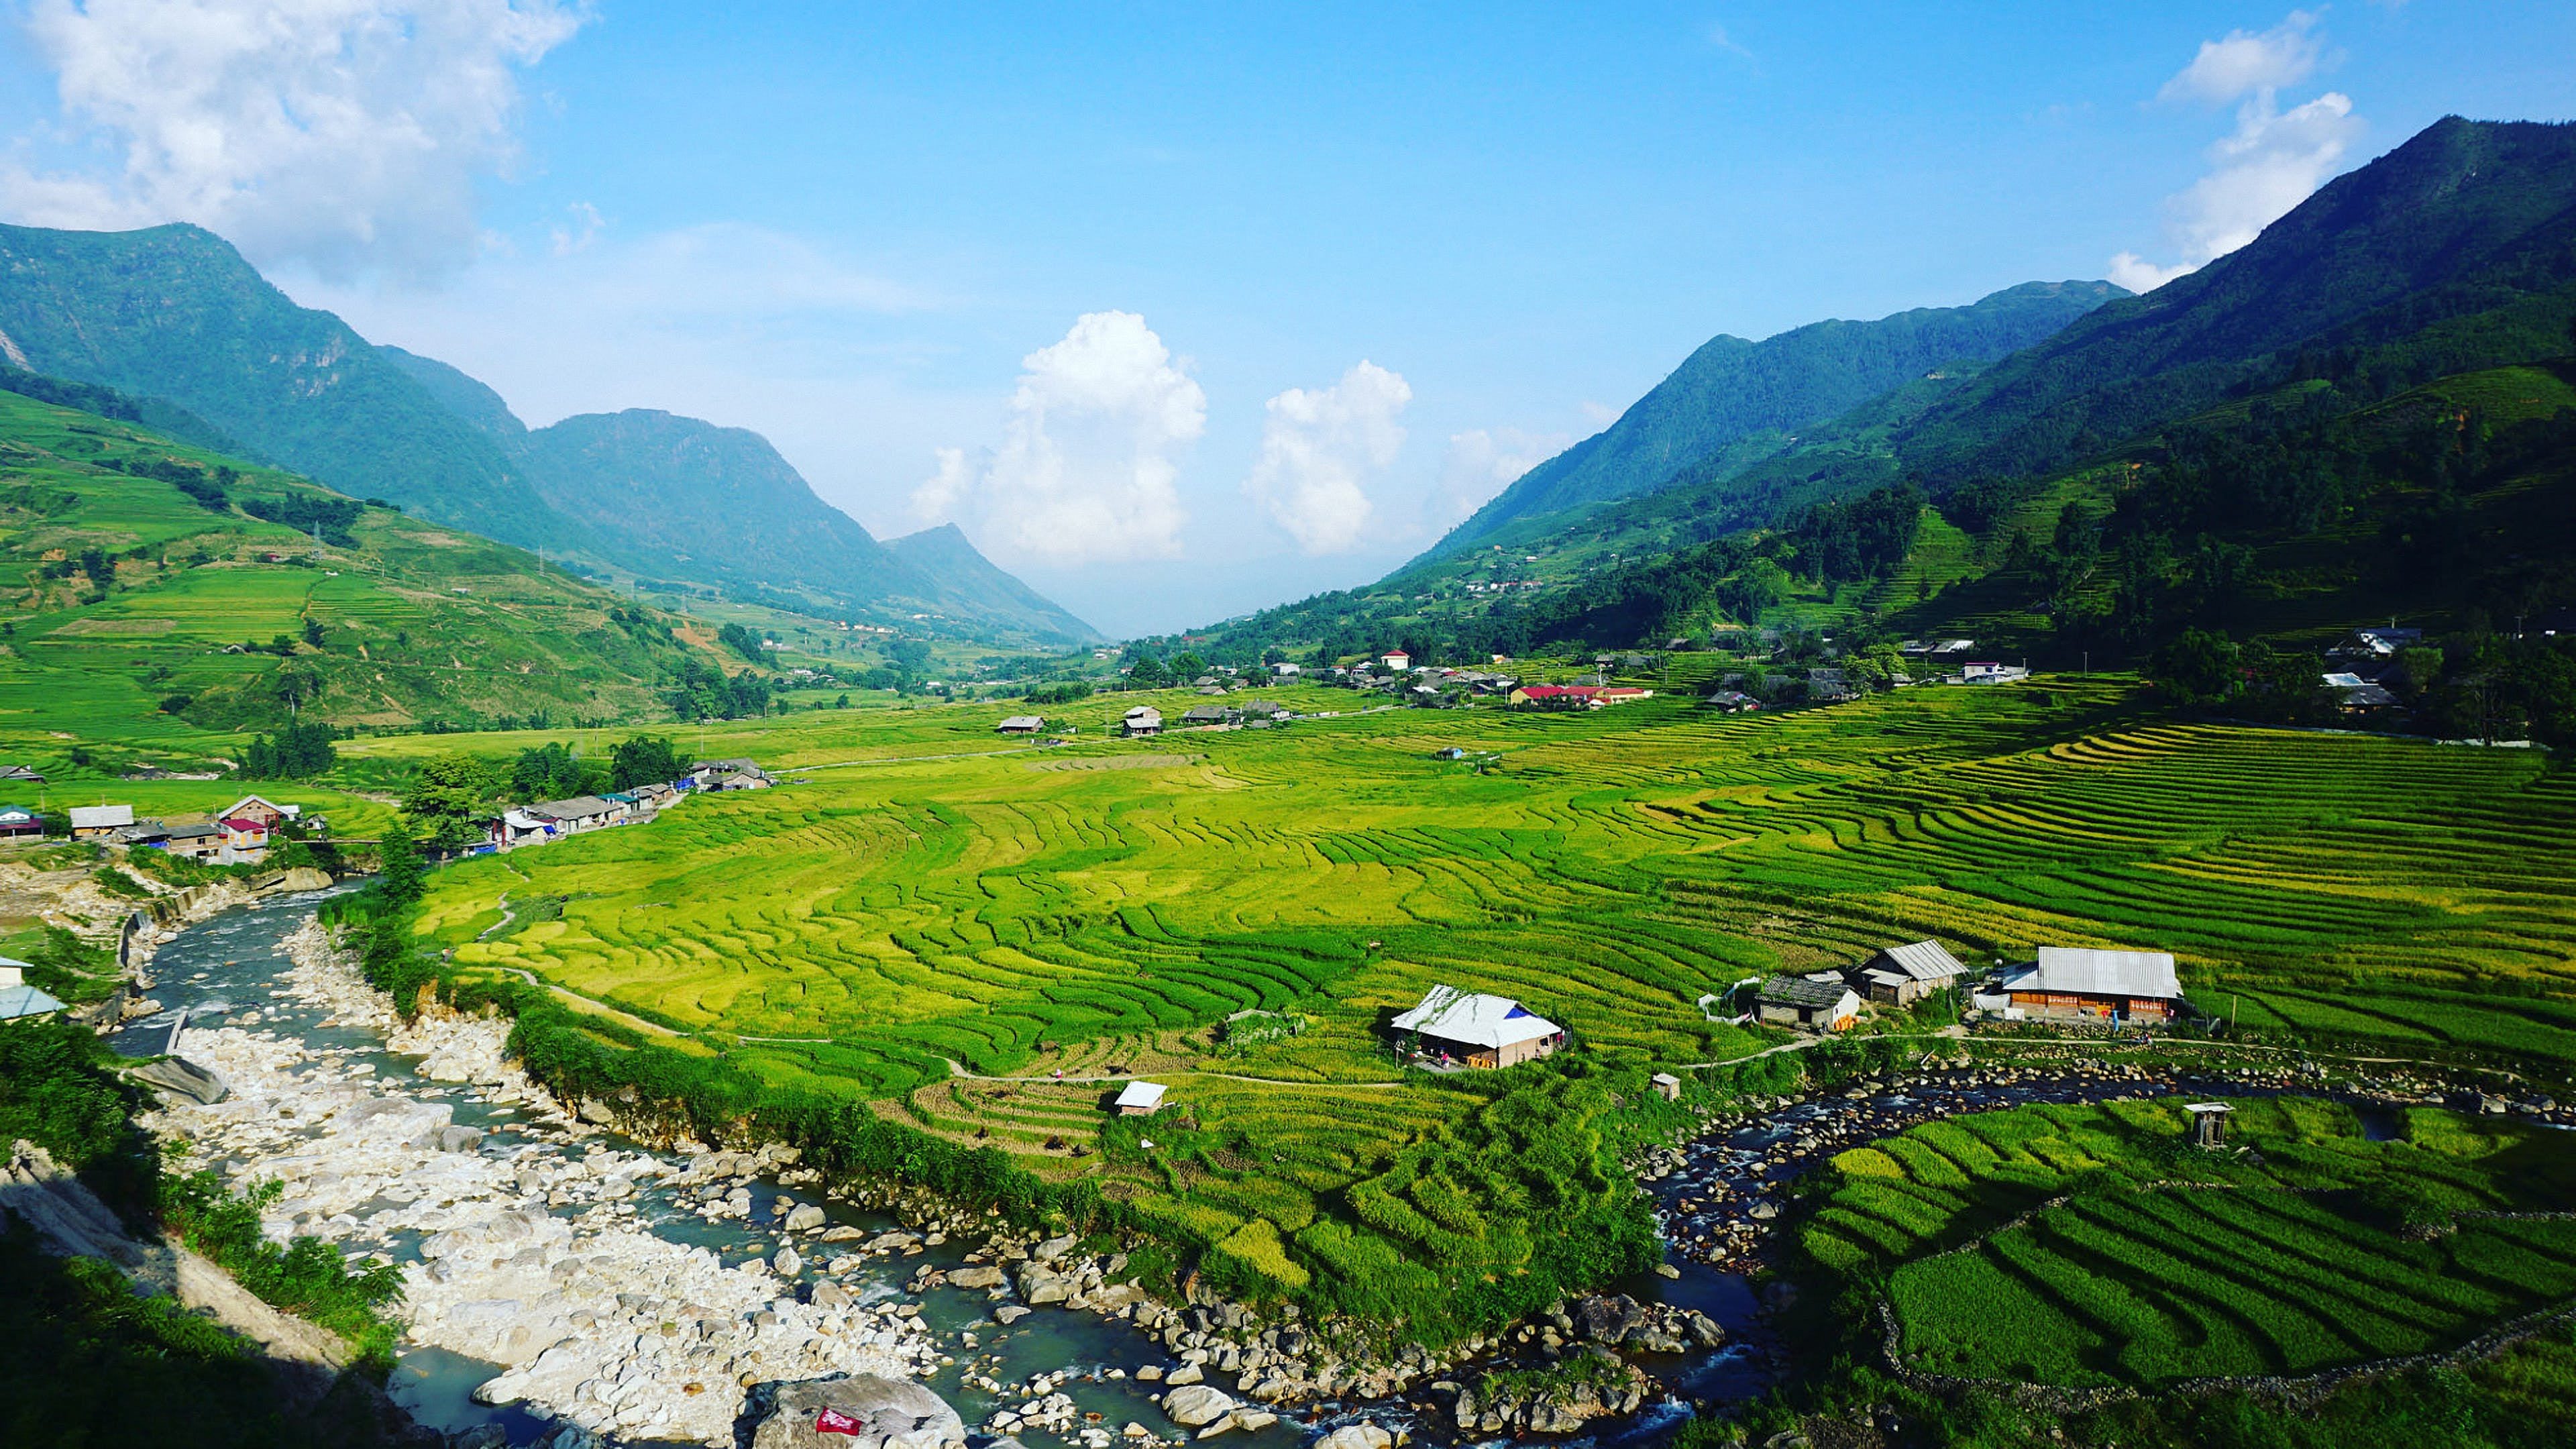 Green Fields Surrounded by Mountains Under Blue Cloudy Sky